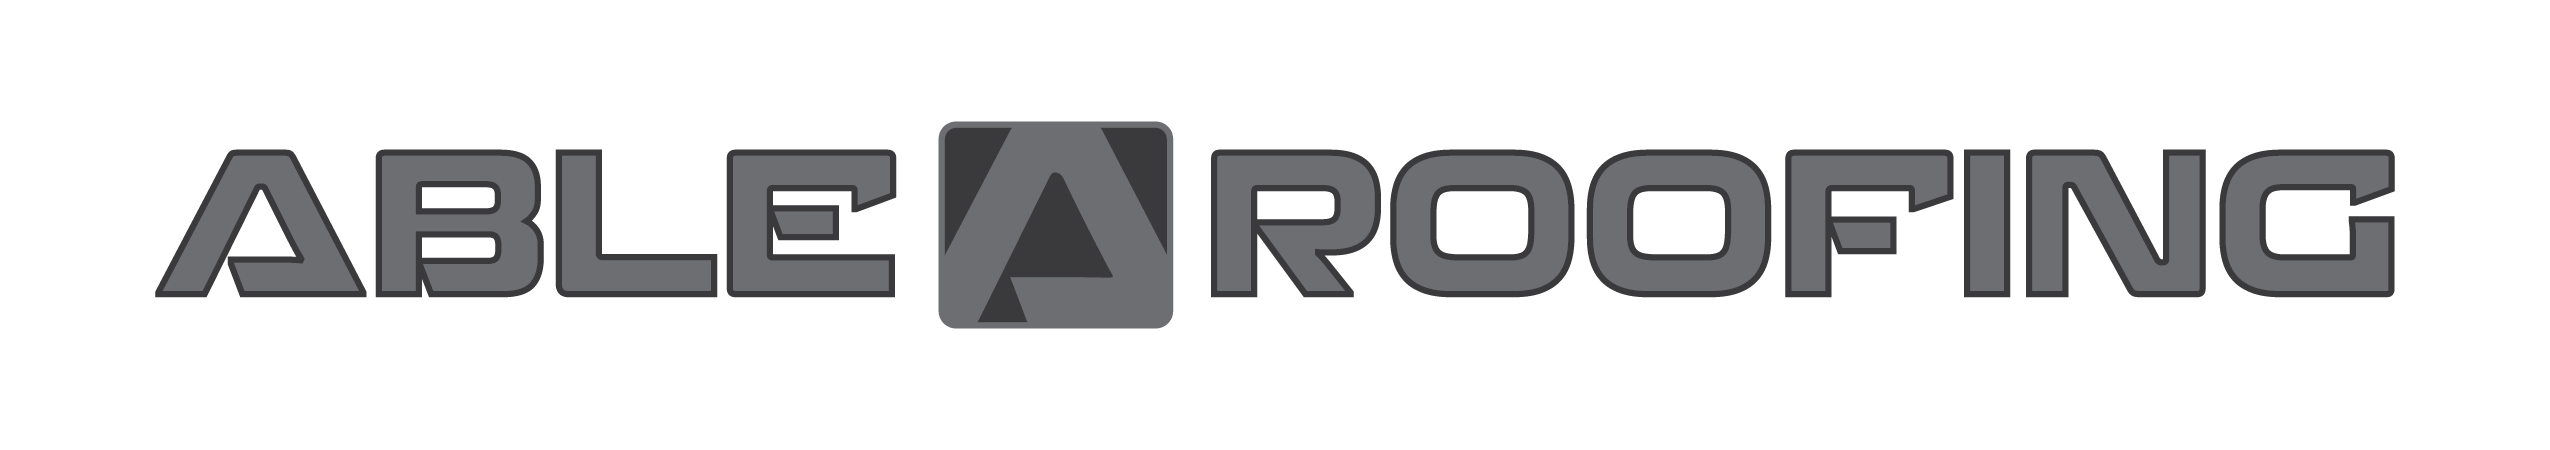 Able Roofing Logo 2